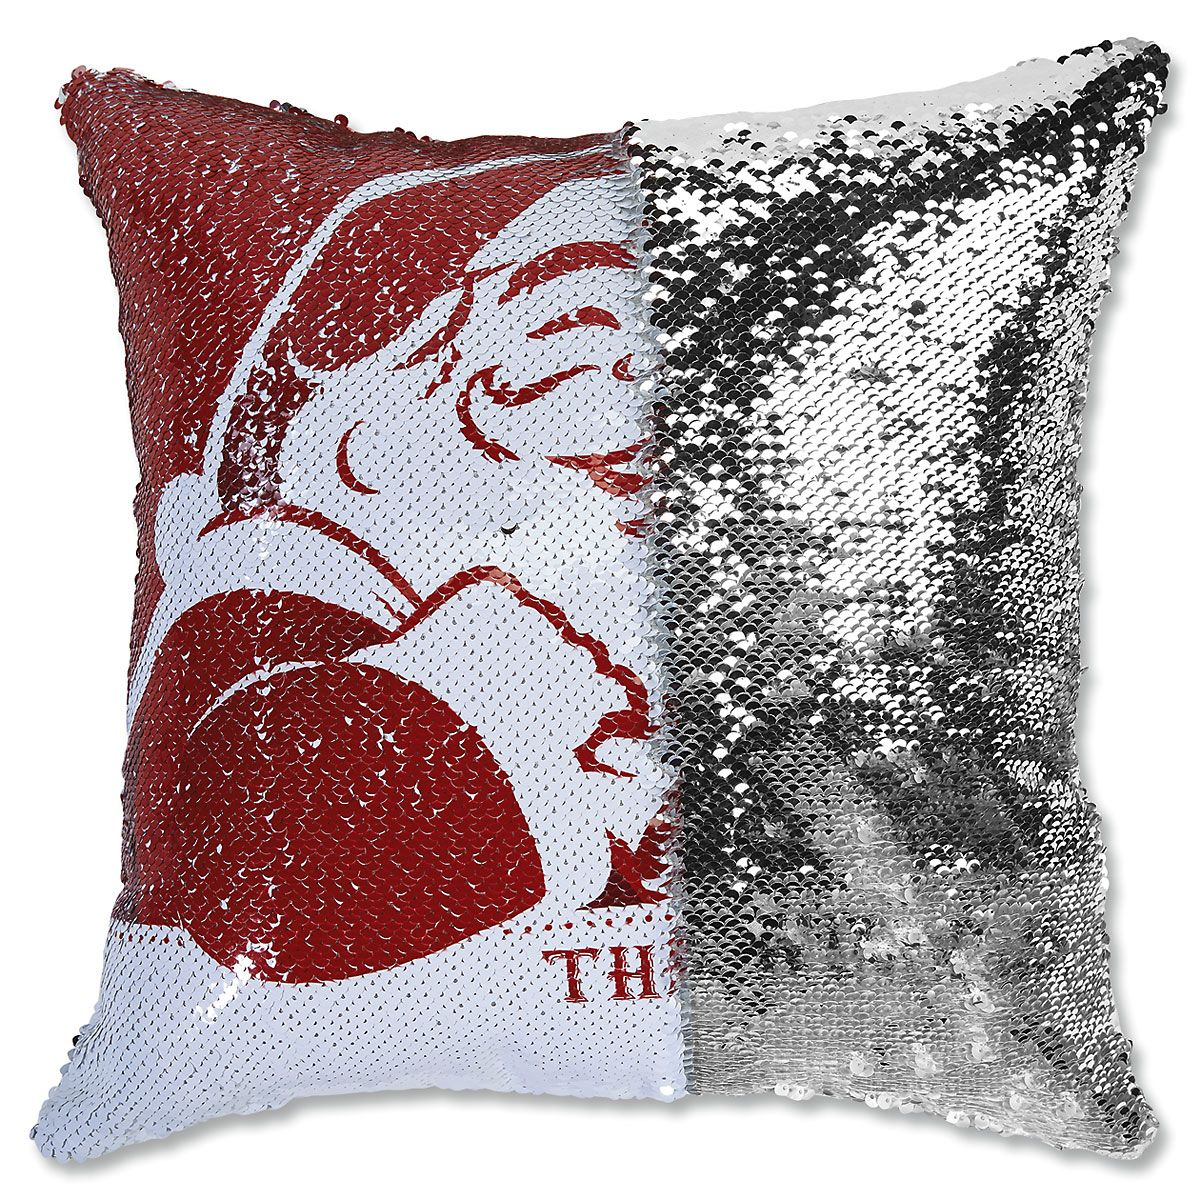 Sequined Santa's Face Pillow